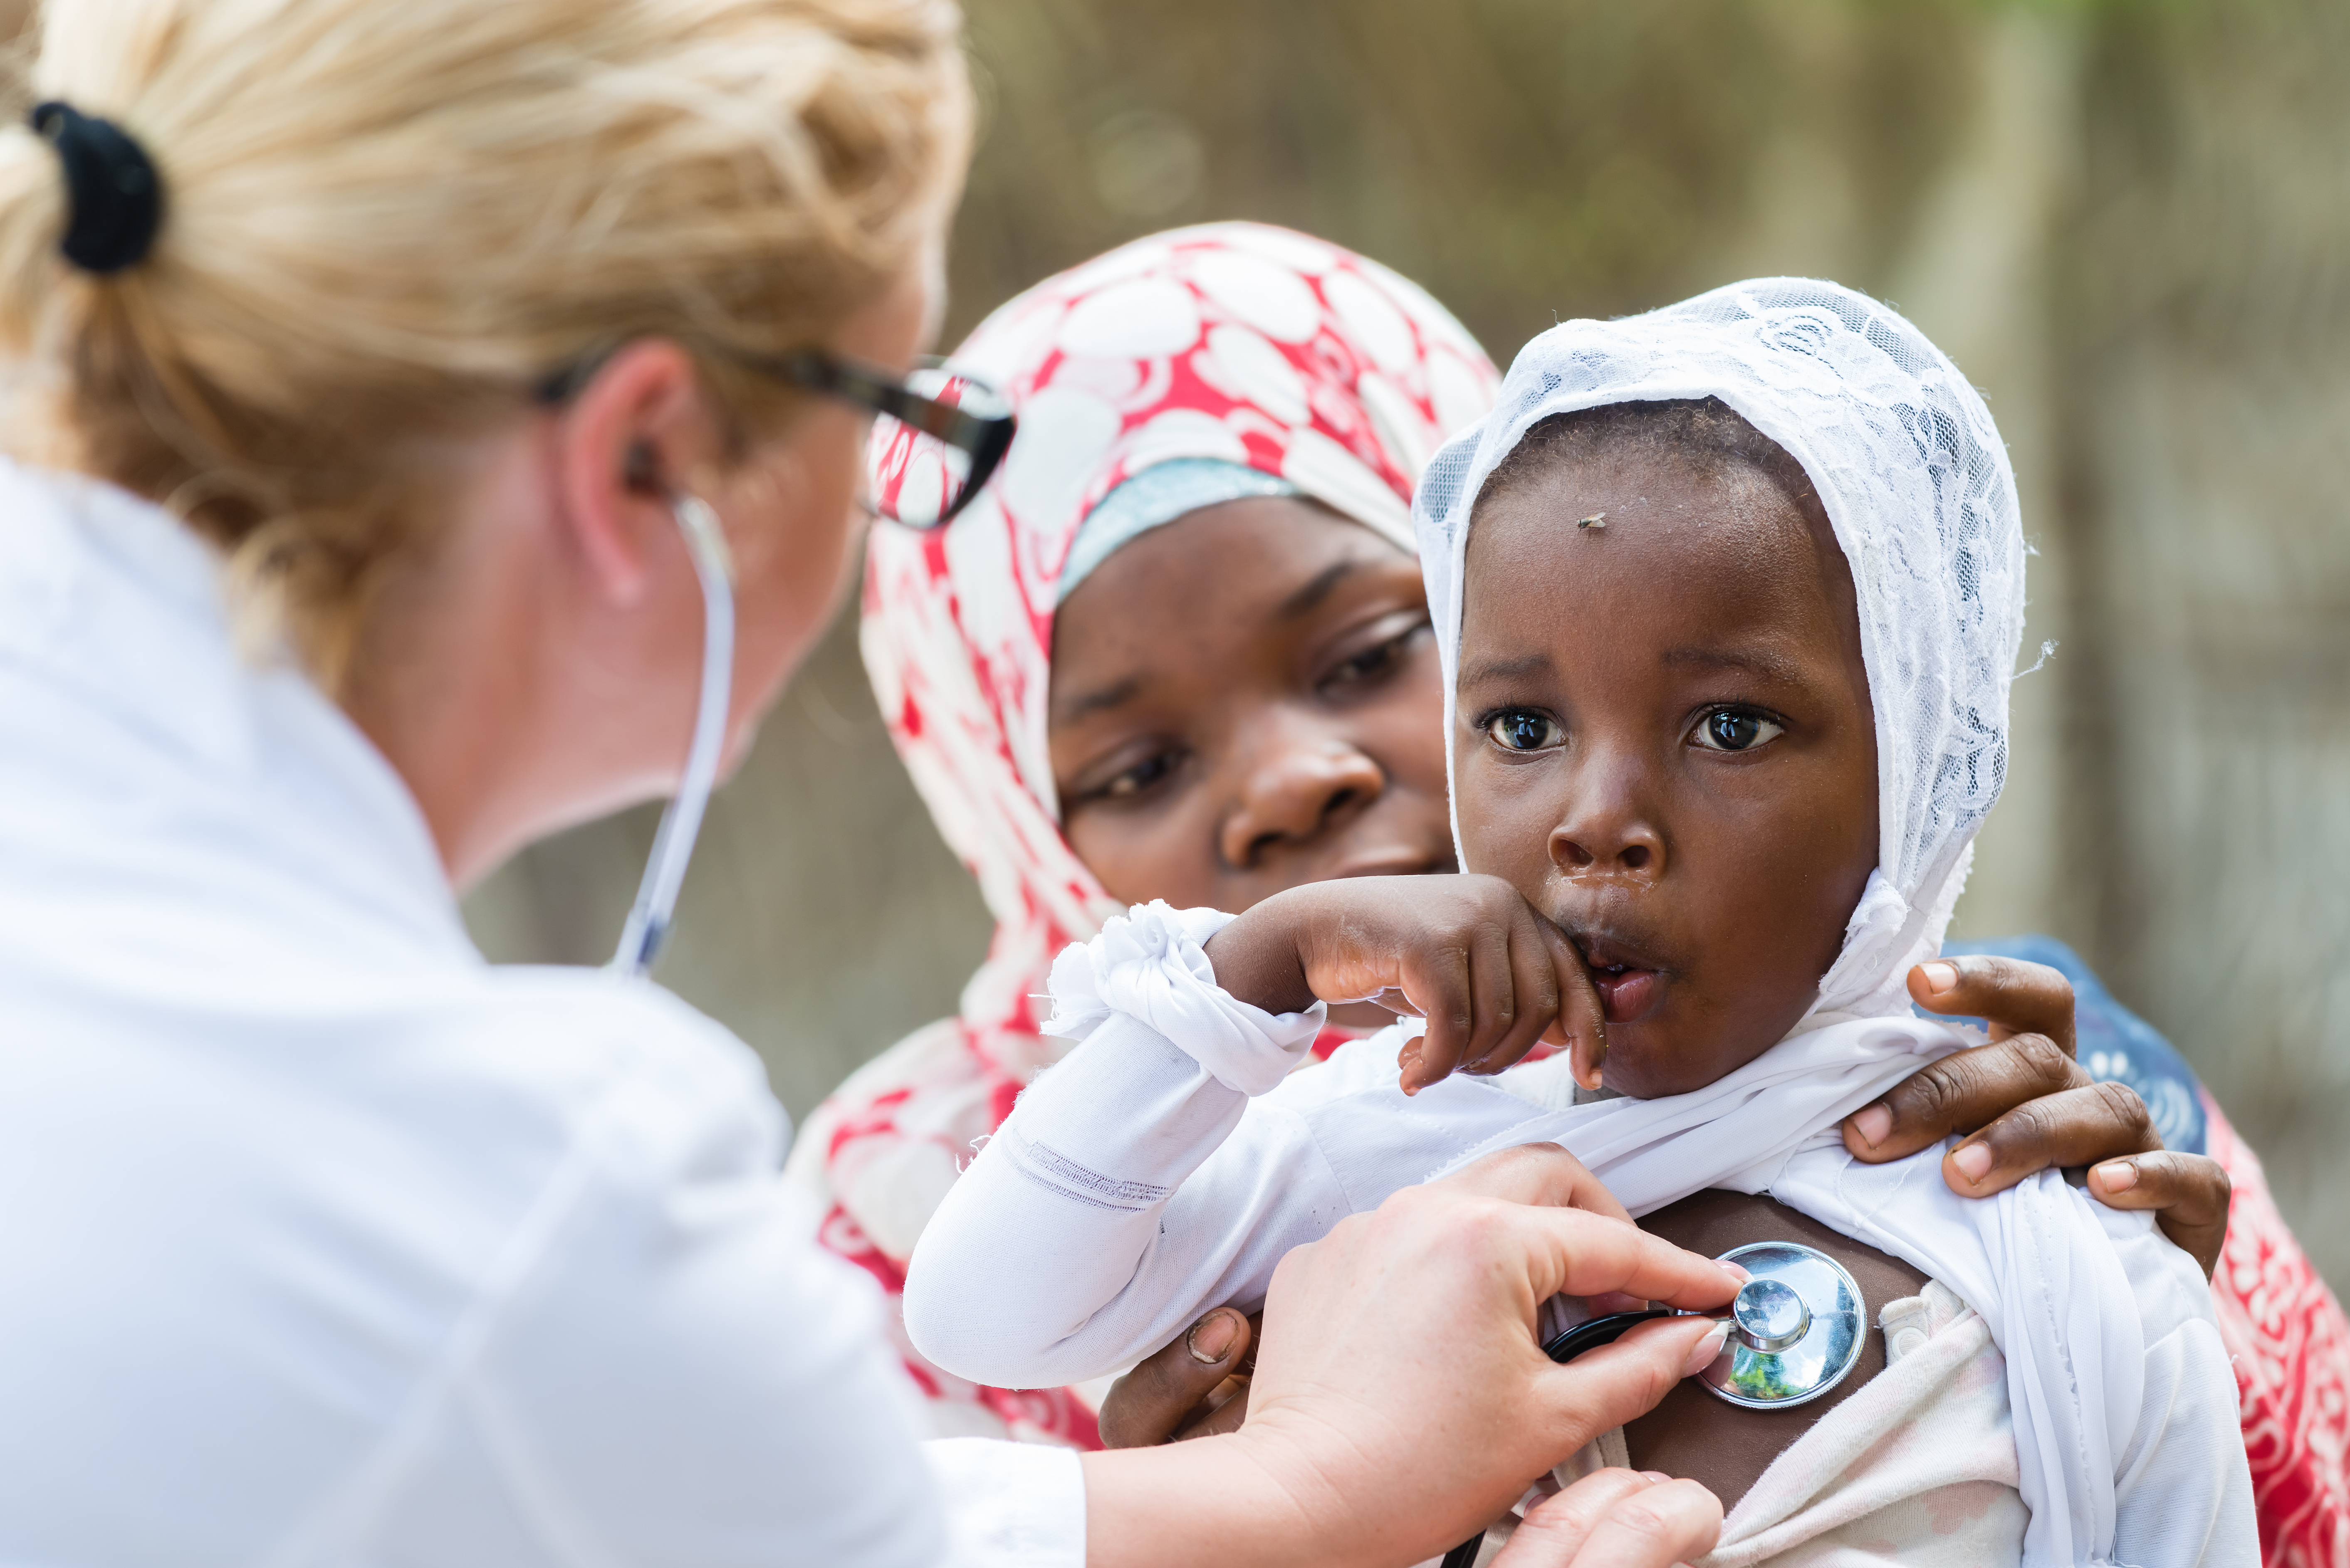 Global Health Still Mimics Colonial Ways: Here's How to Break the Pattern